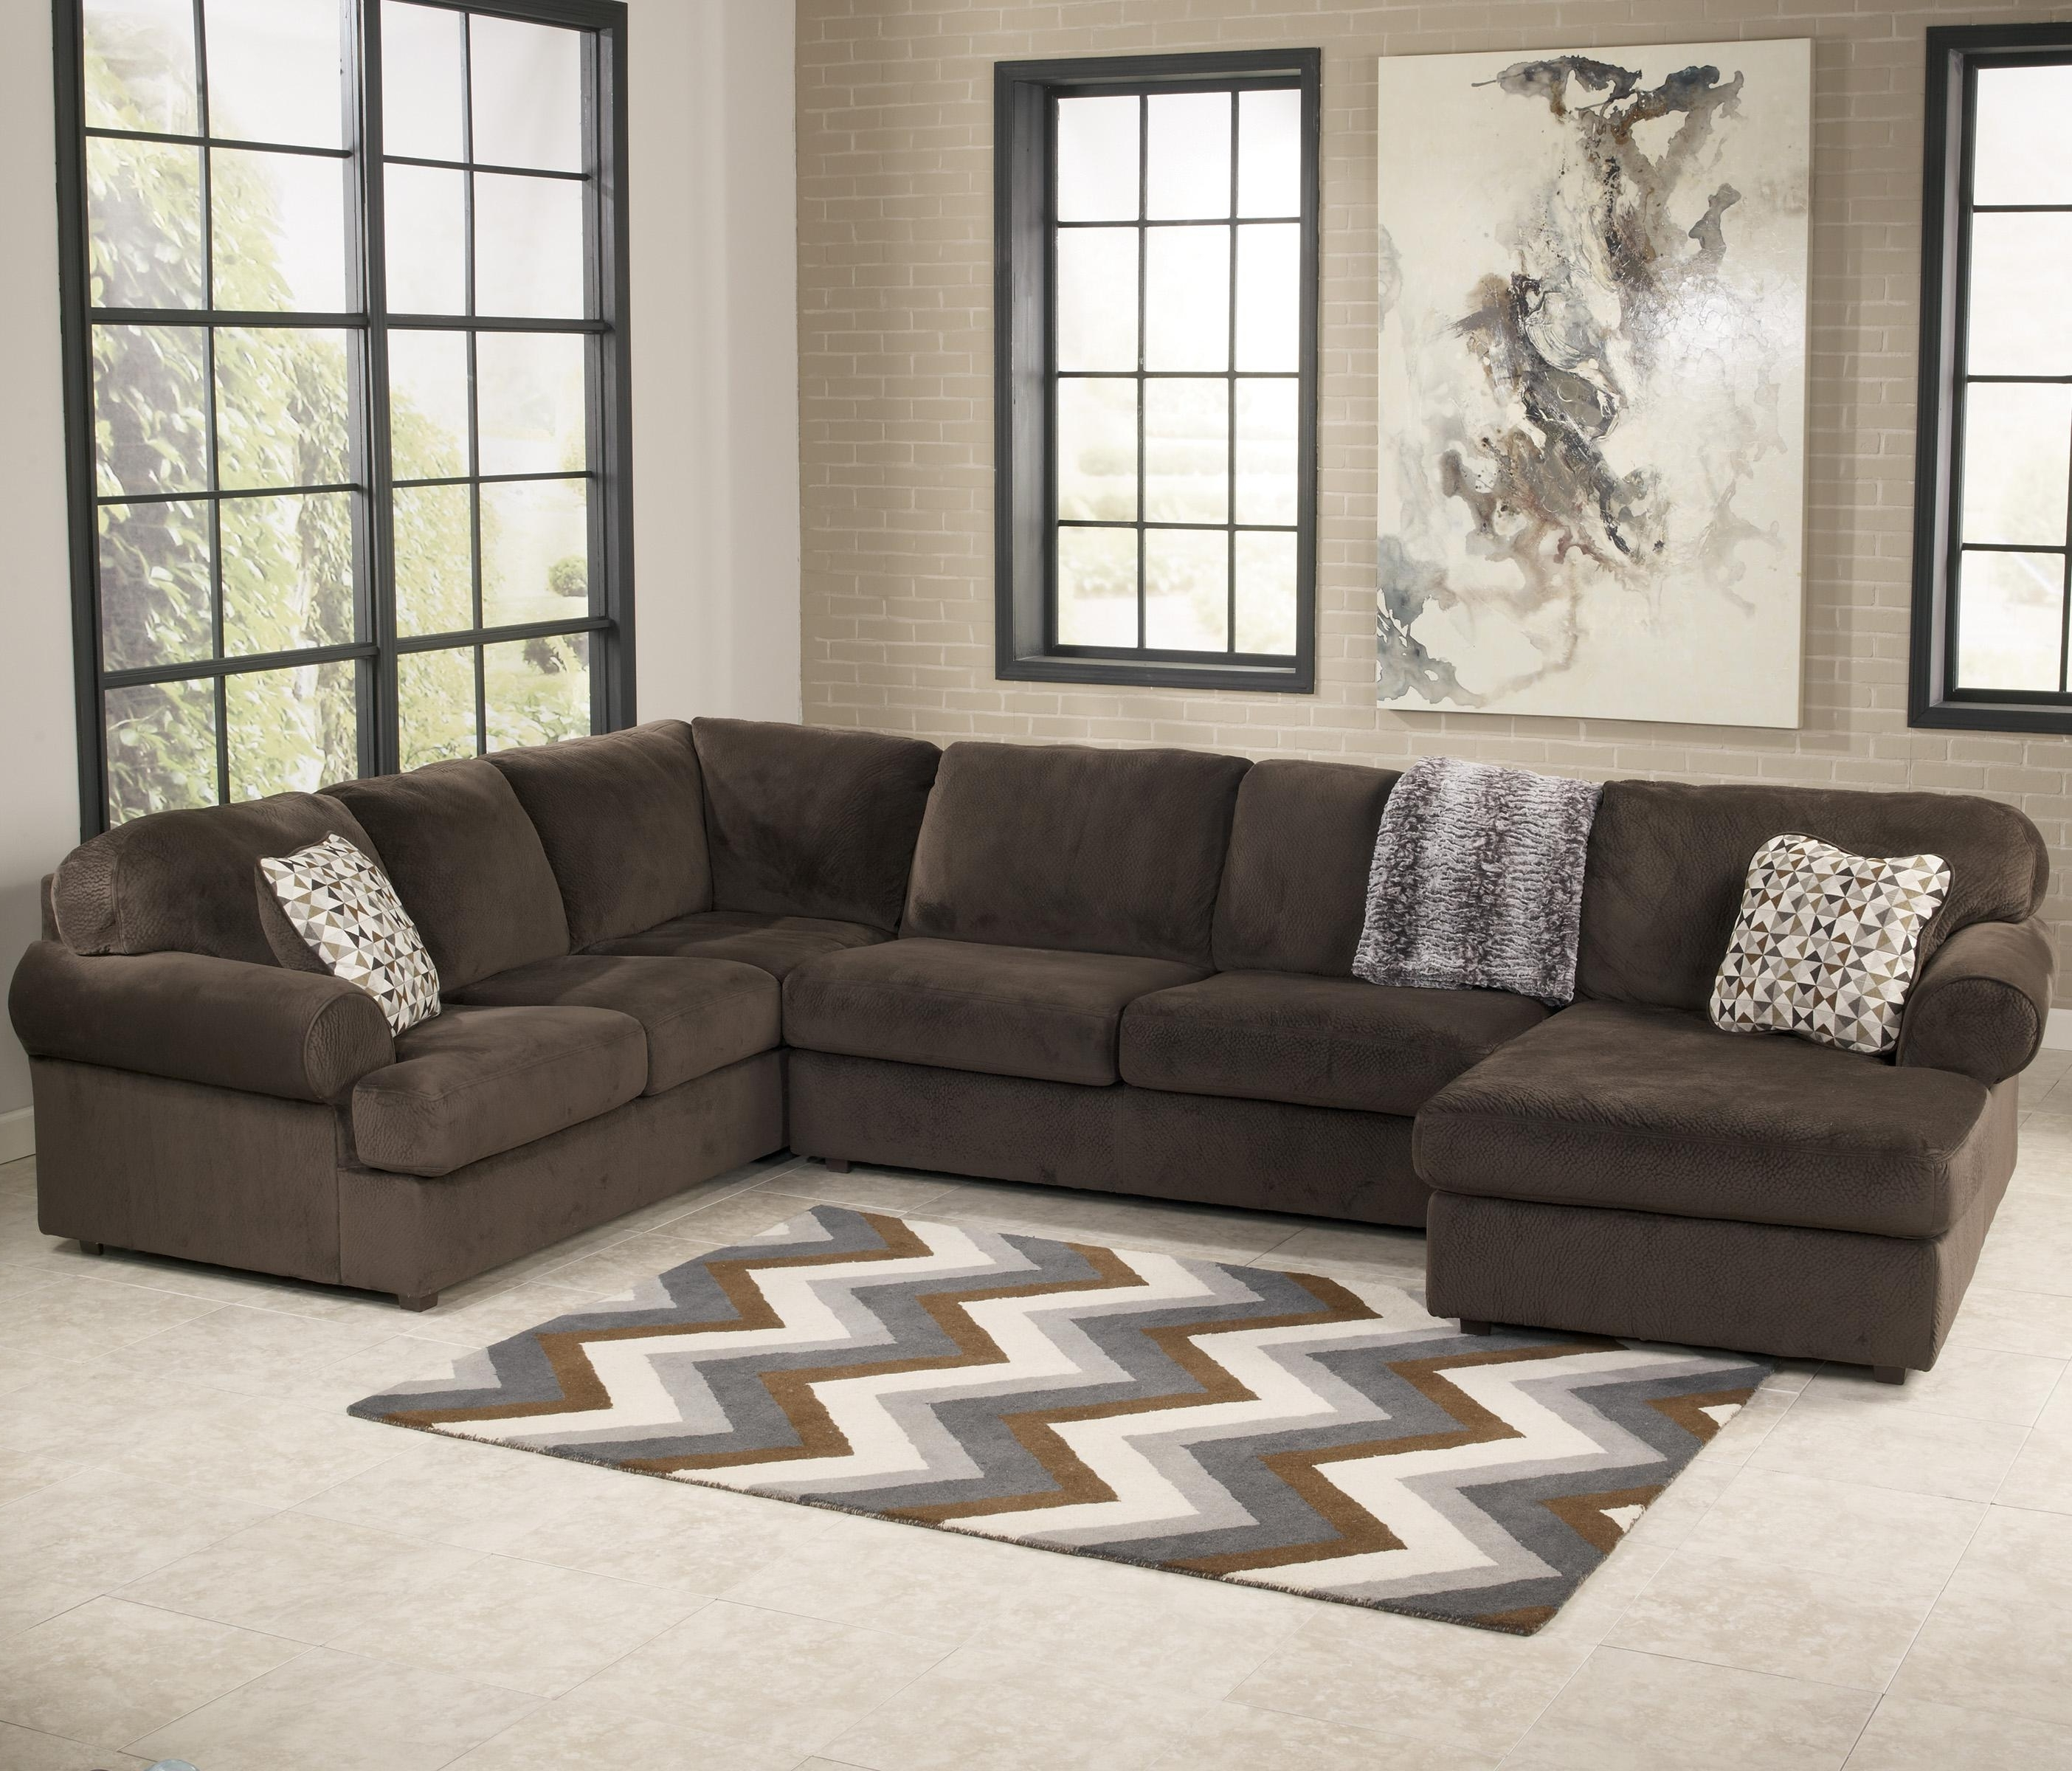 Chocolate Brown Sectional Sofa With Chaise (View 2 of 20)